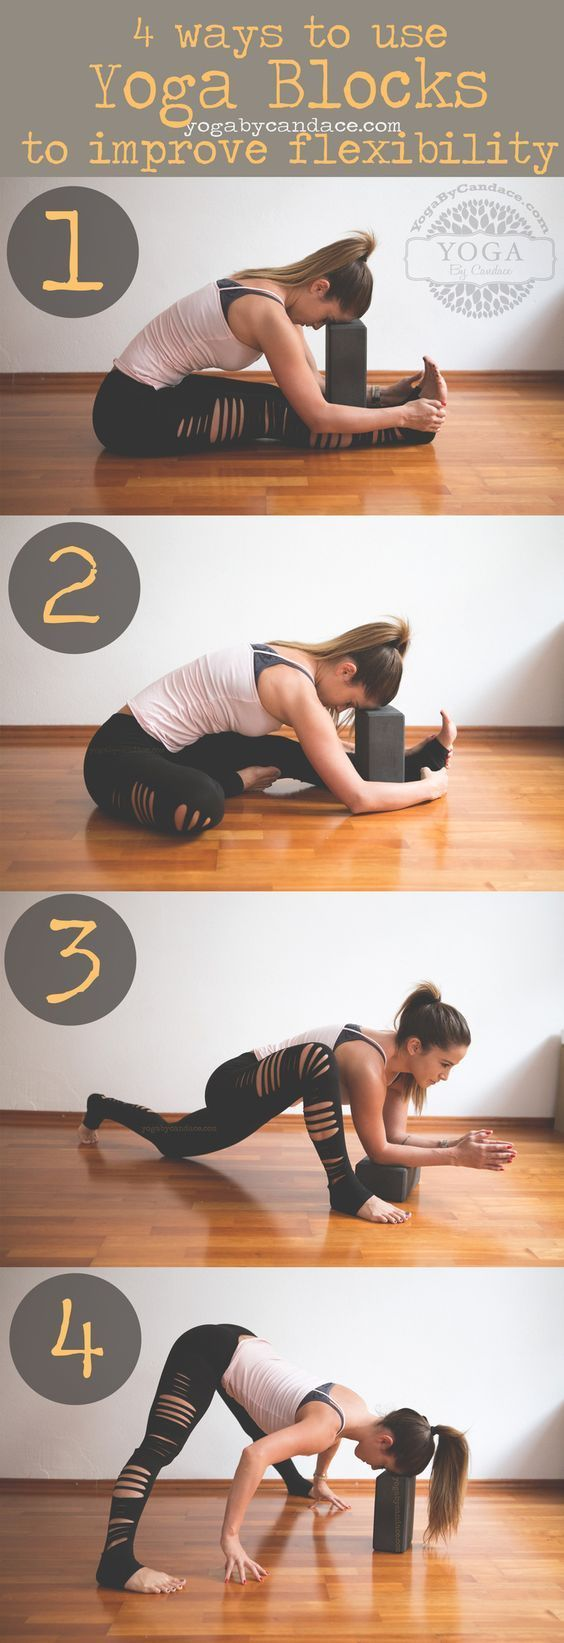 4 Ways to use yoga blocks for flexibility  #yoga #ShermanFinancialGroup